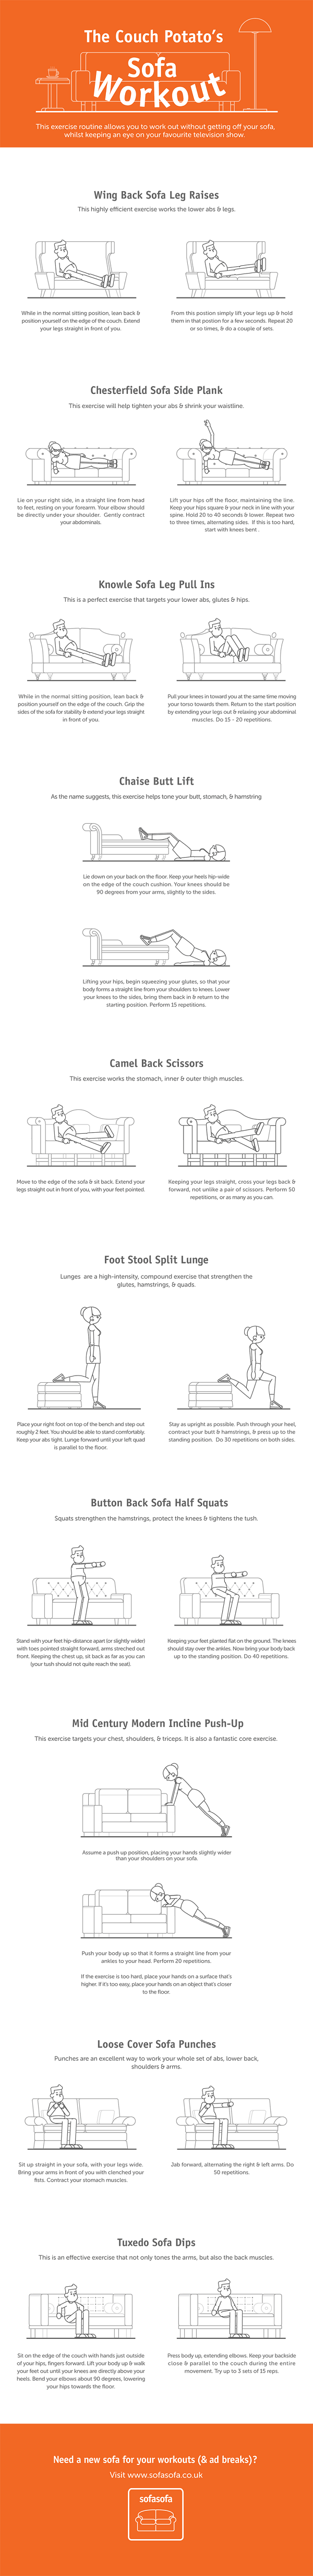 Infographic A Set Of Sofa Exercises For Couch Potatoes